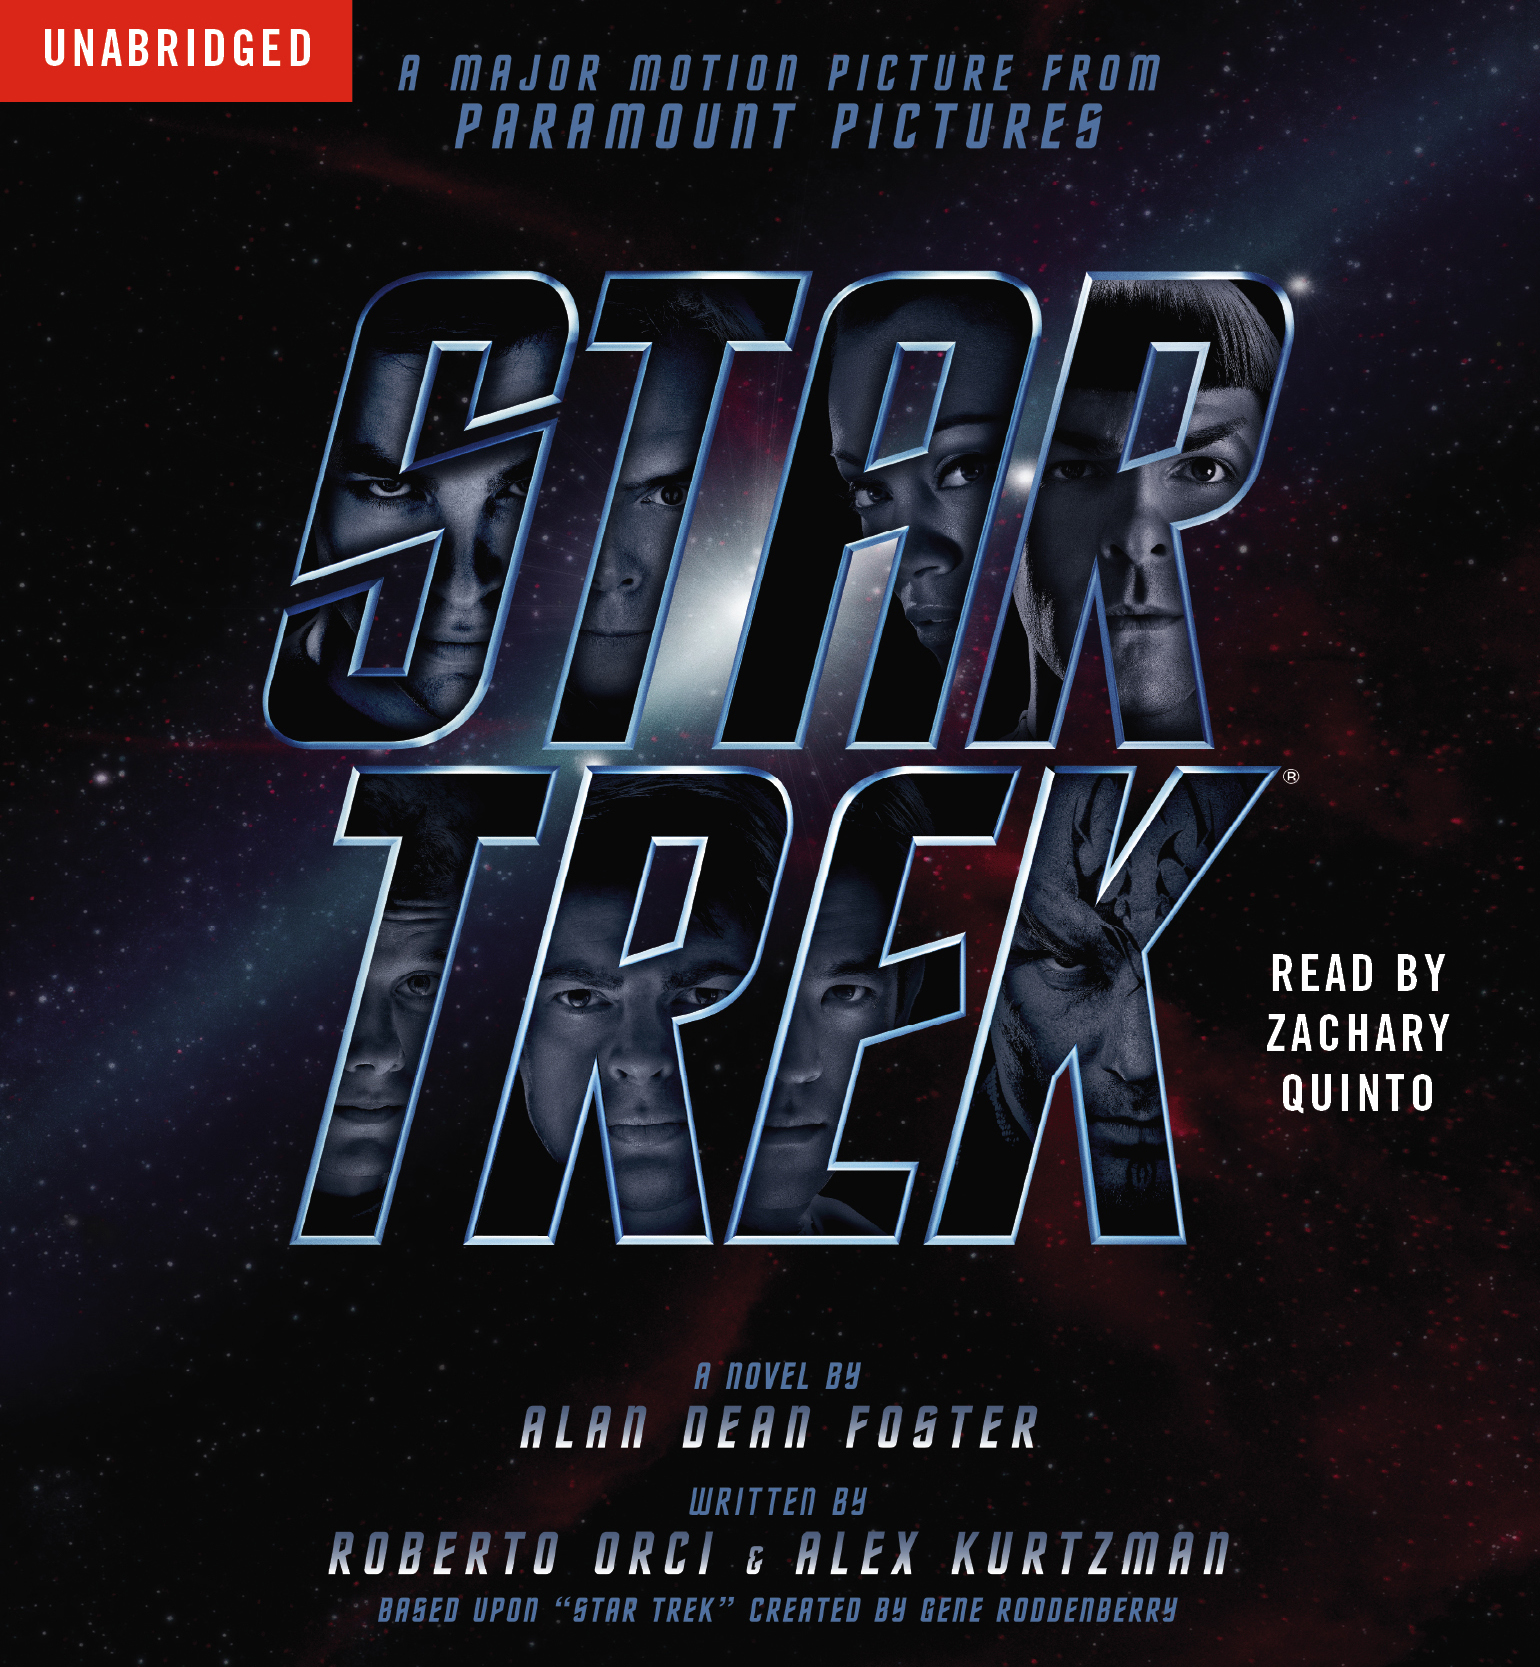 Star-trek-movie-tie-in-9780743598354_hr